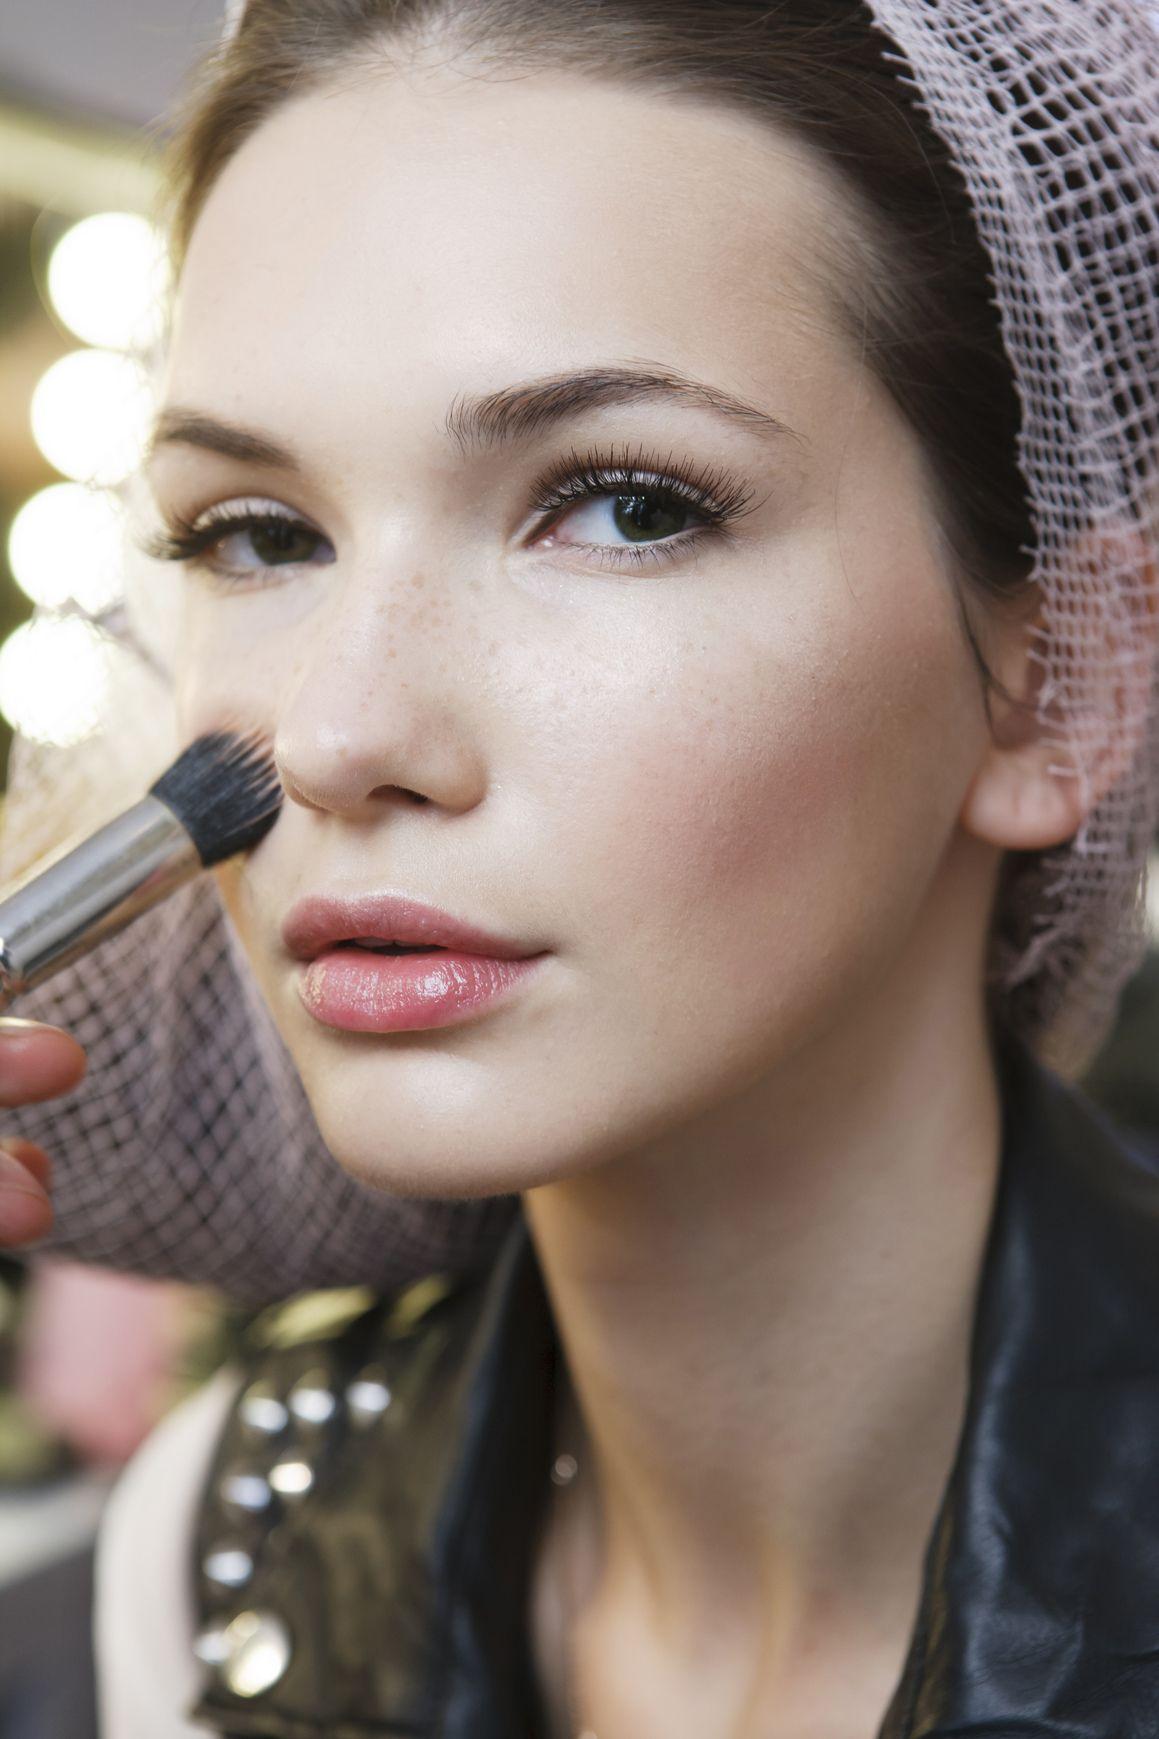 Ask a Makeup Artist: What's The Best Way To Really Cover Acne Scars